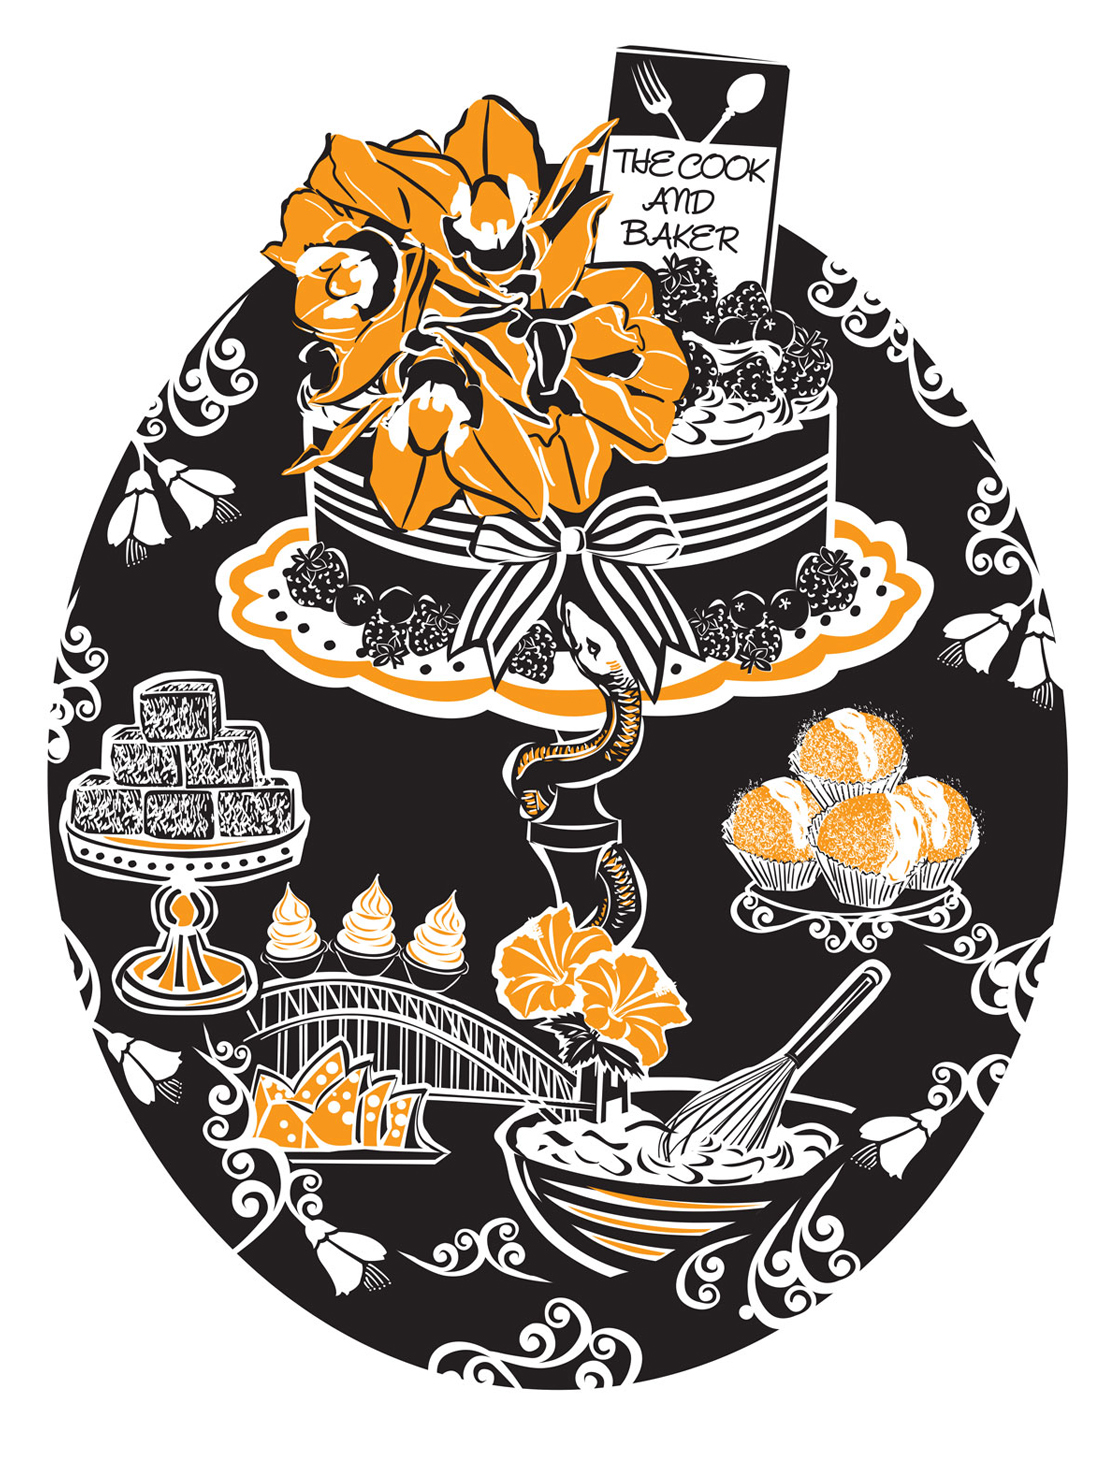 Tea towel commissioned by 'The Cook and Baker' café, Sydney 2015.